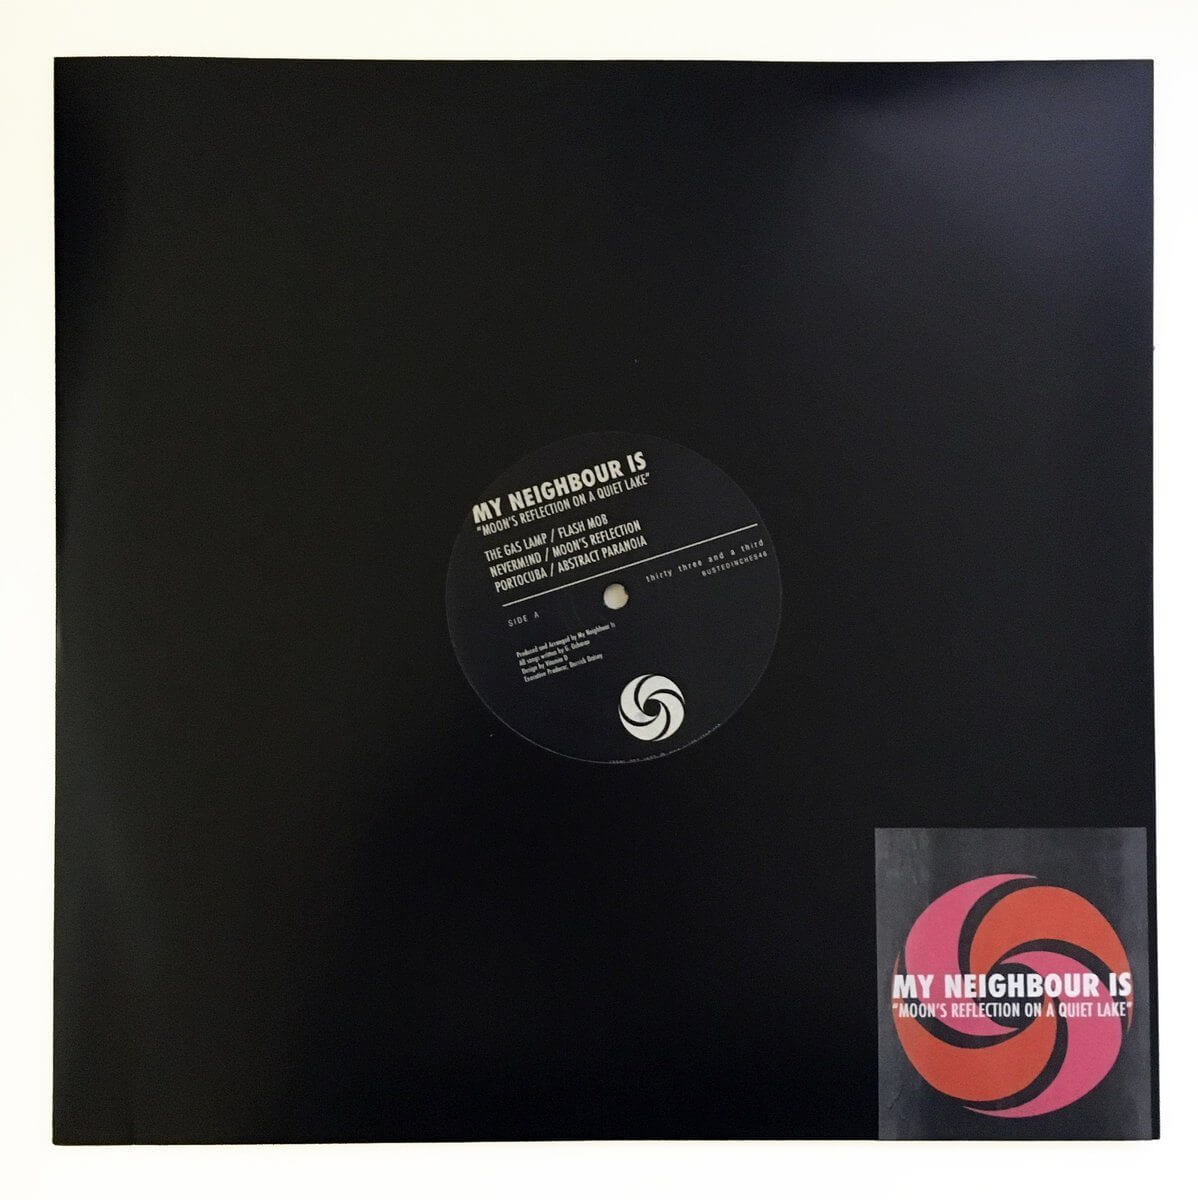 "My Neighbour Is - Moon's Reflection On A Quiet Lake - Limited Edition 12"" Vinyl Cold Busted"